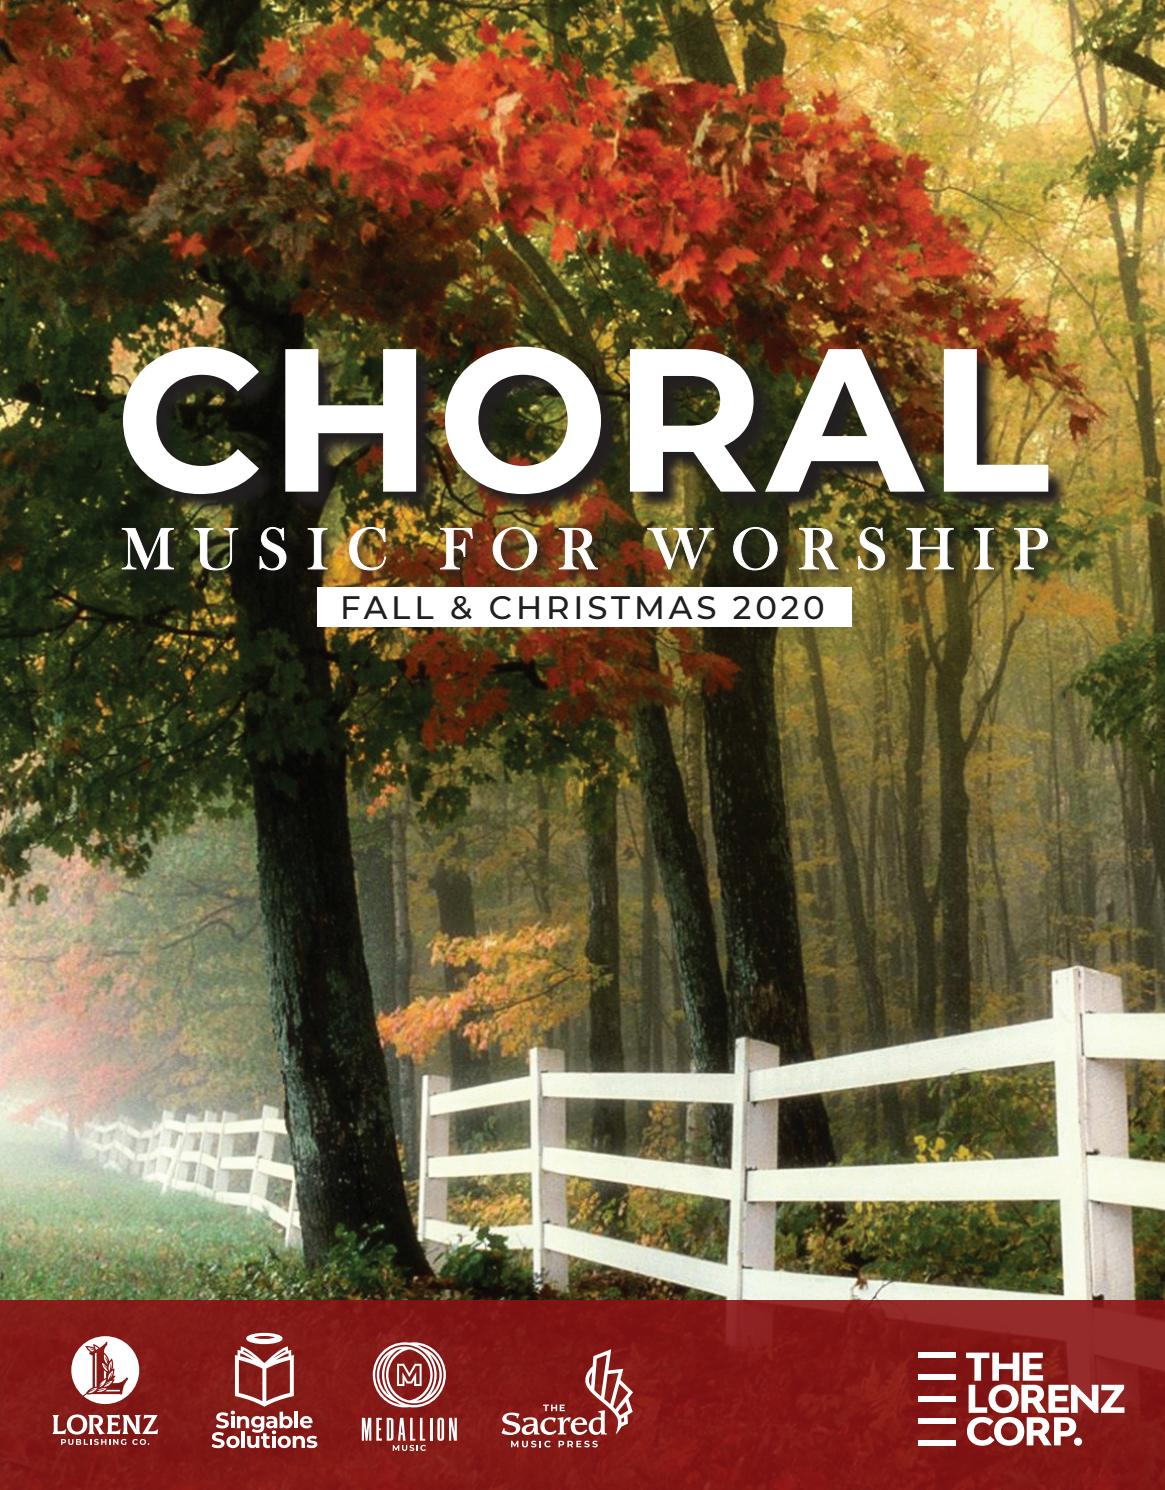 New Christmas Worship Music 2020 Fall and Christmas 2020 Choral Music for Worship by Lorenz   issuu